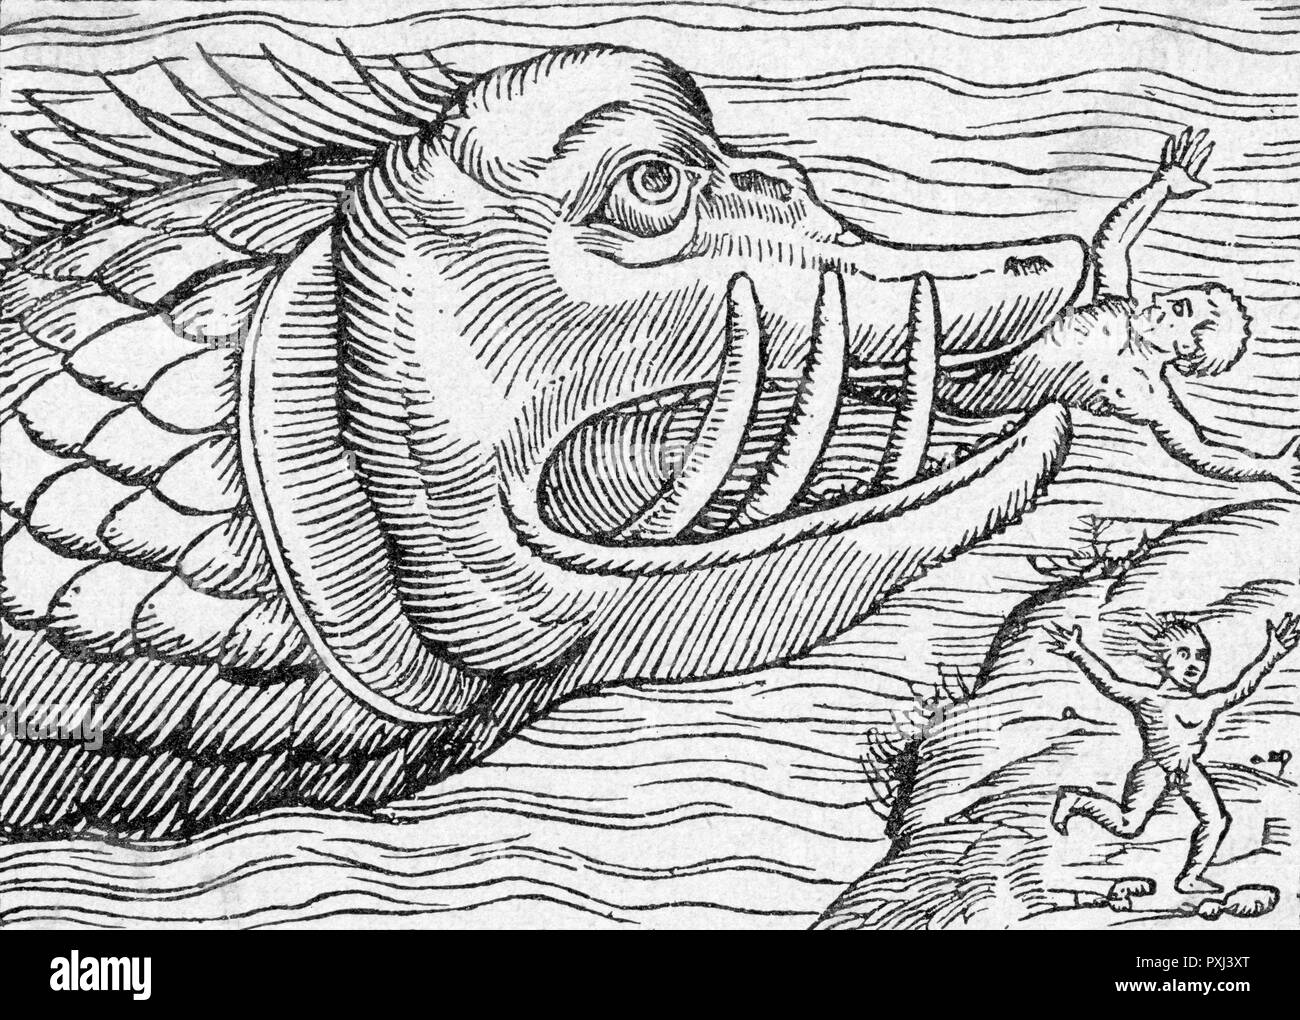 A sea-monster grabs a victim from the shore, while his cowardly companion runs away instead of tackling the brute      Date: 1550 - Stock Image